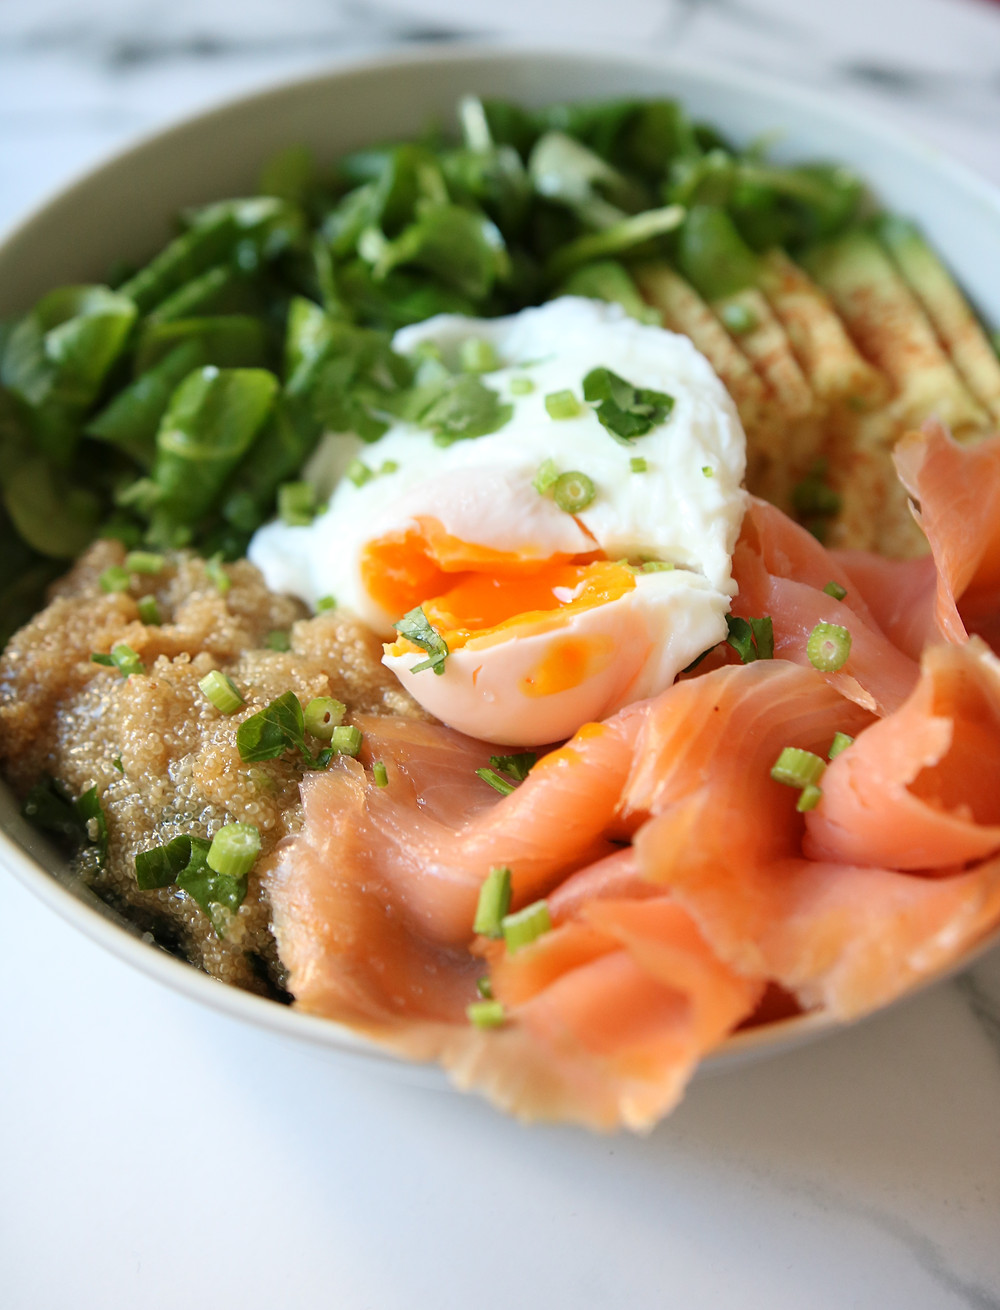 A cracked poached egg sits on top of smoked salmon, amaranth, salad greens and avocado.